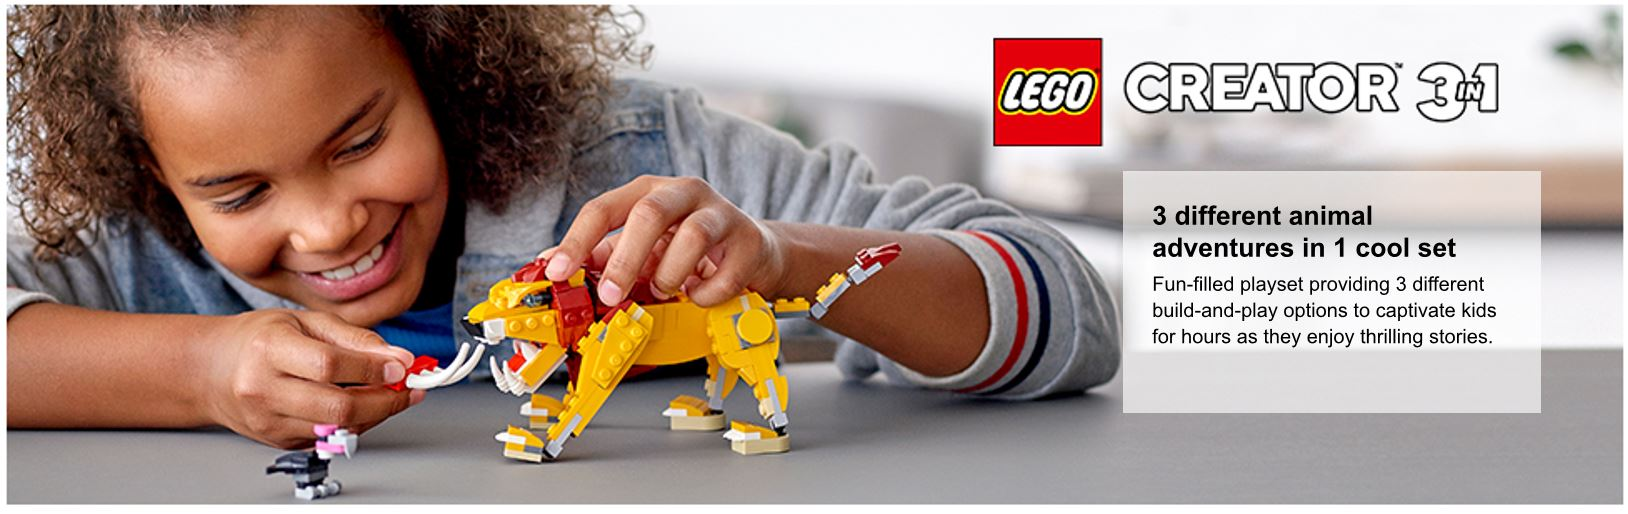 child playing with lion model